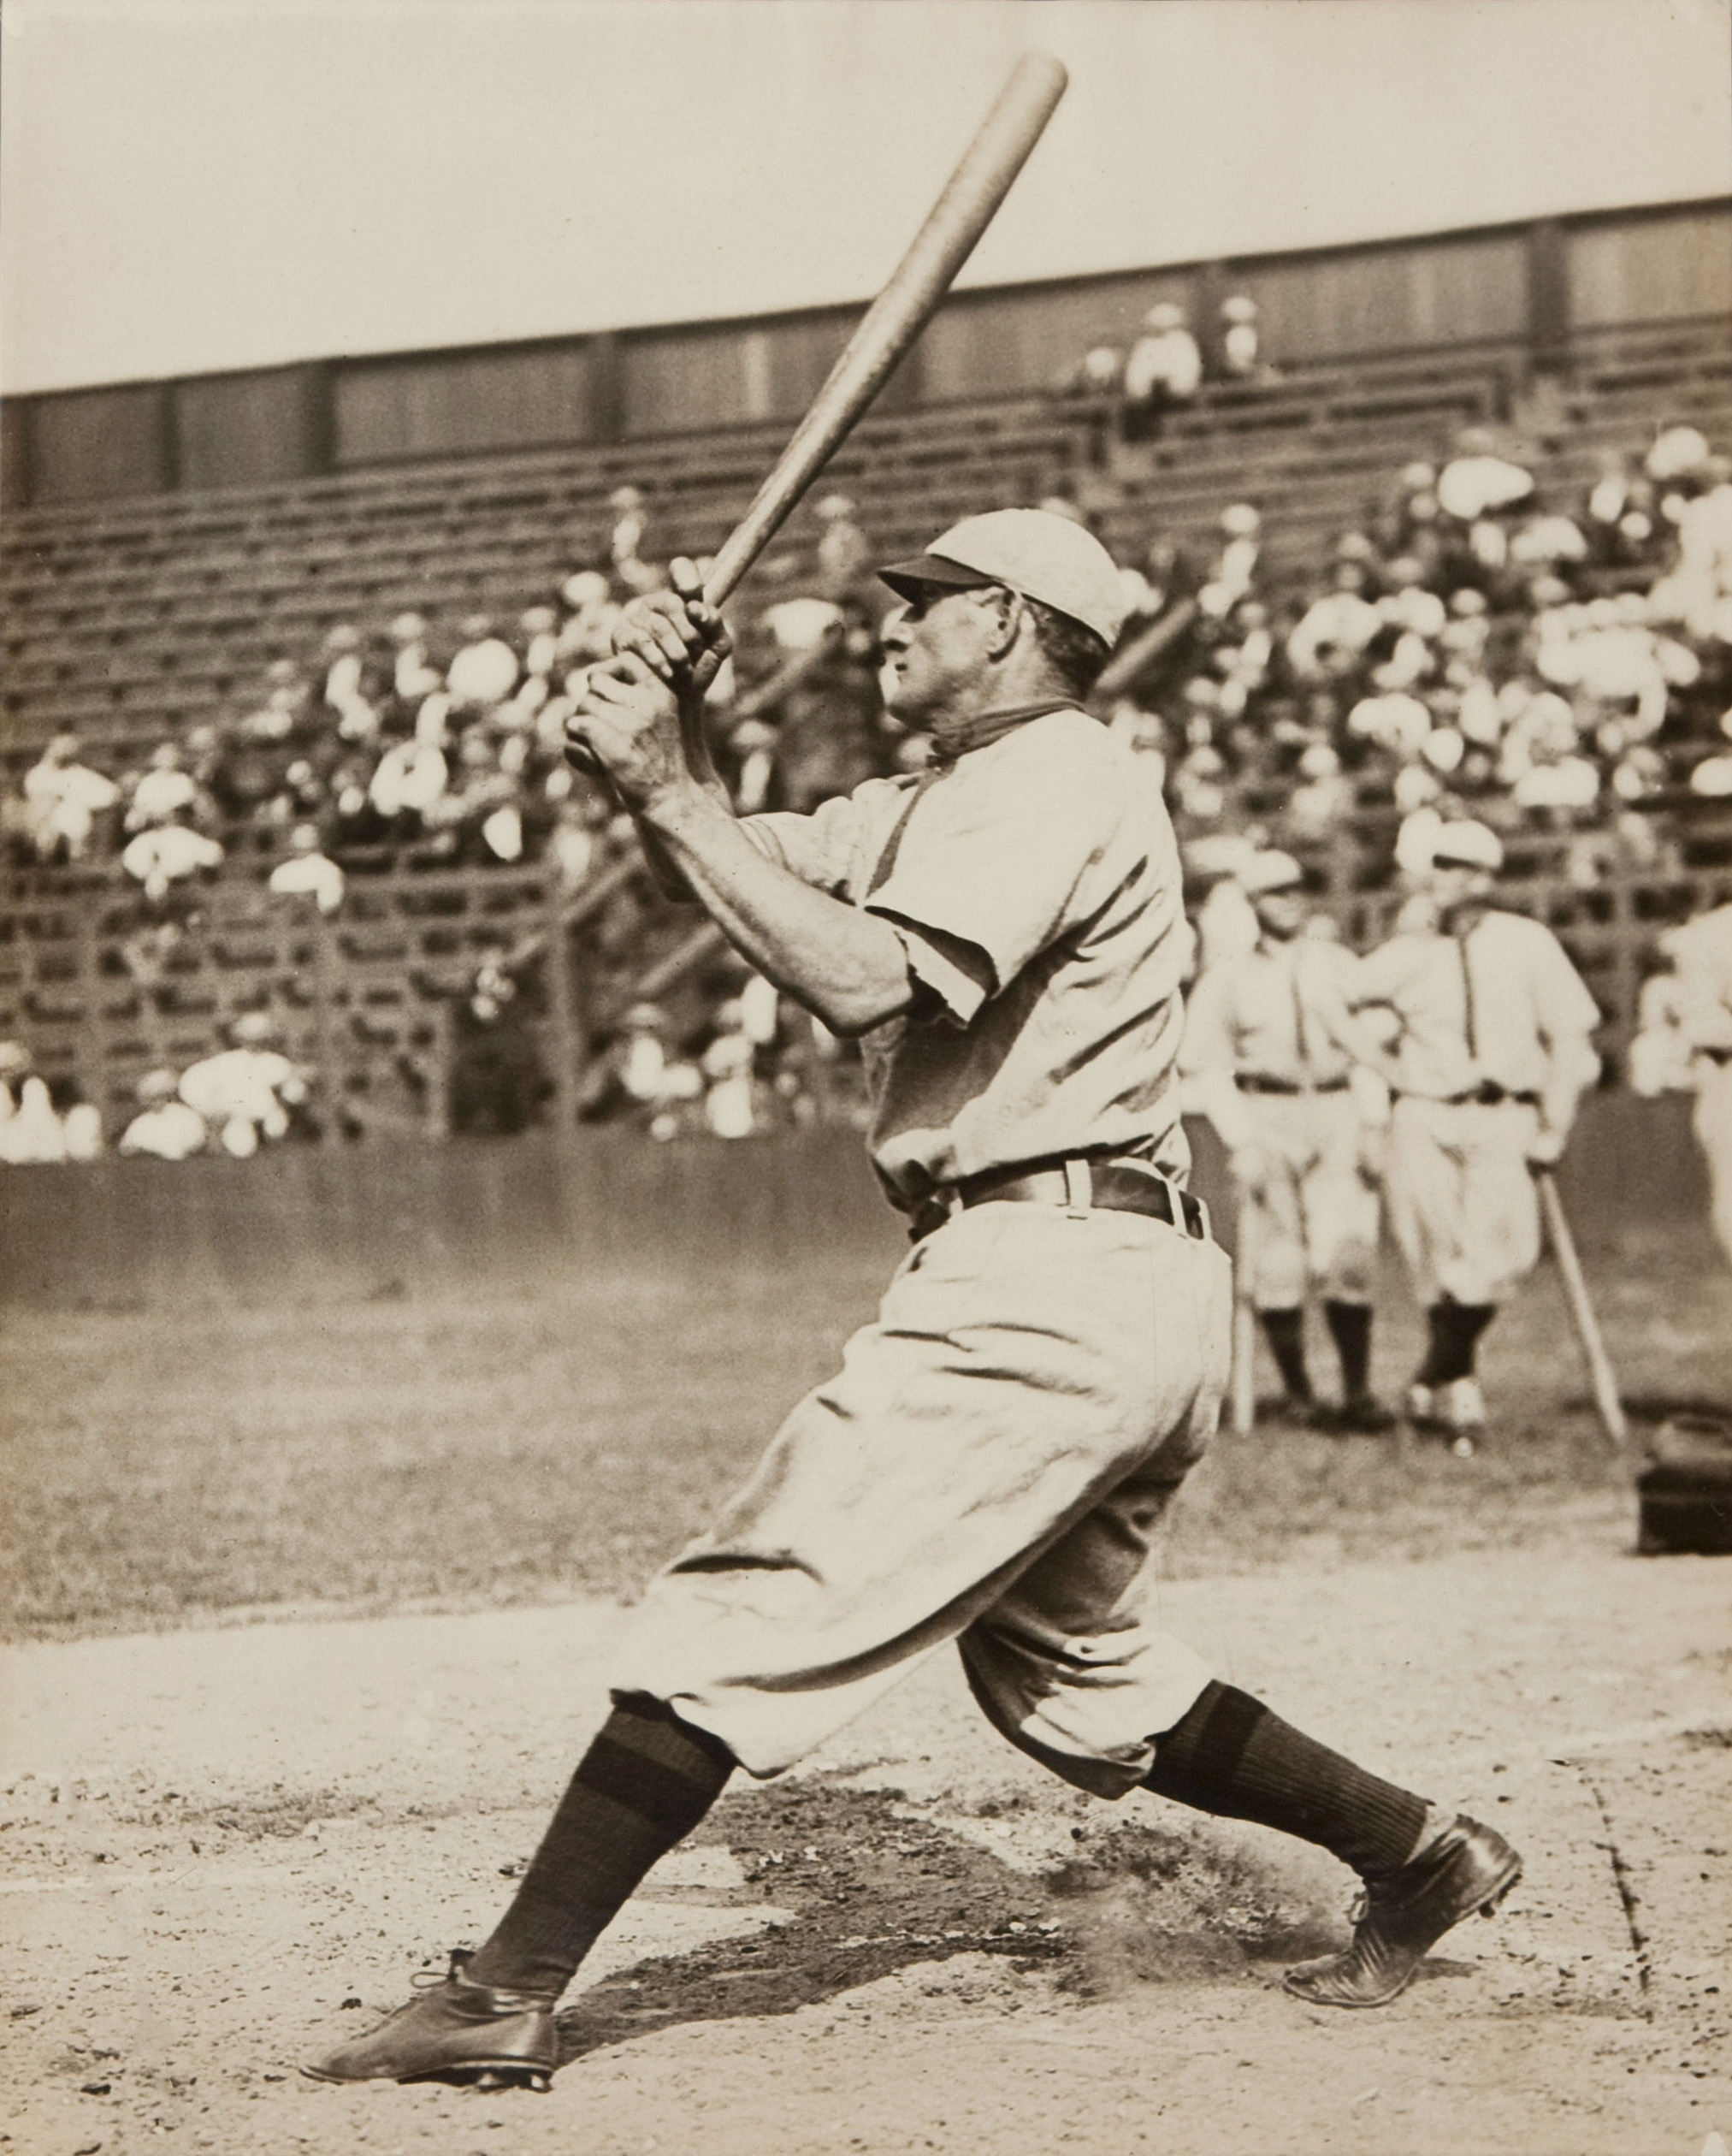 Wagner demonstrating his unique swing.